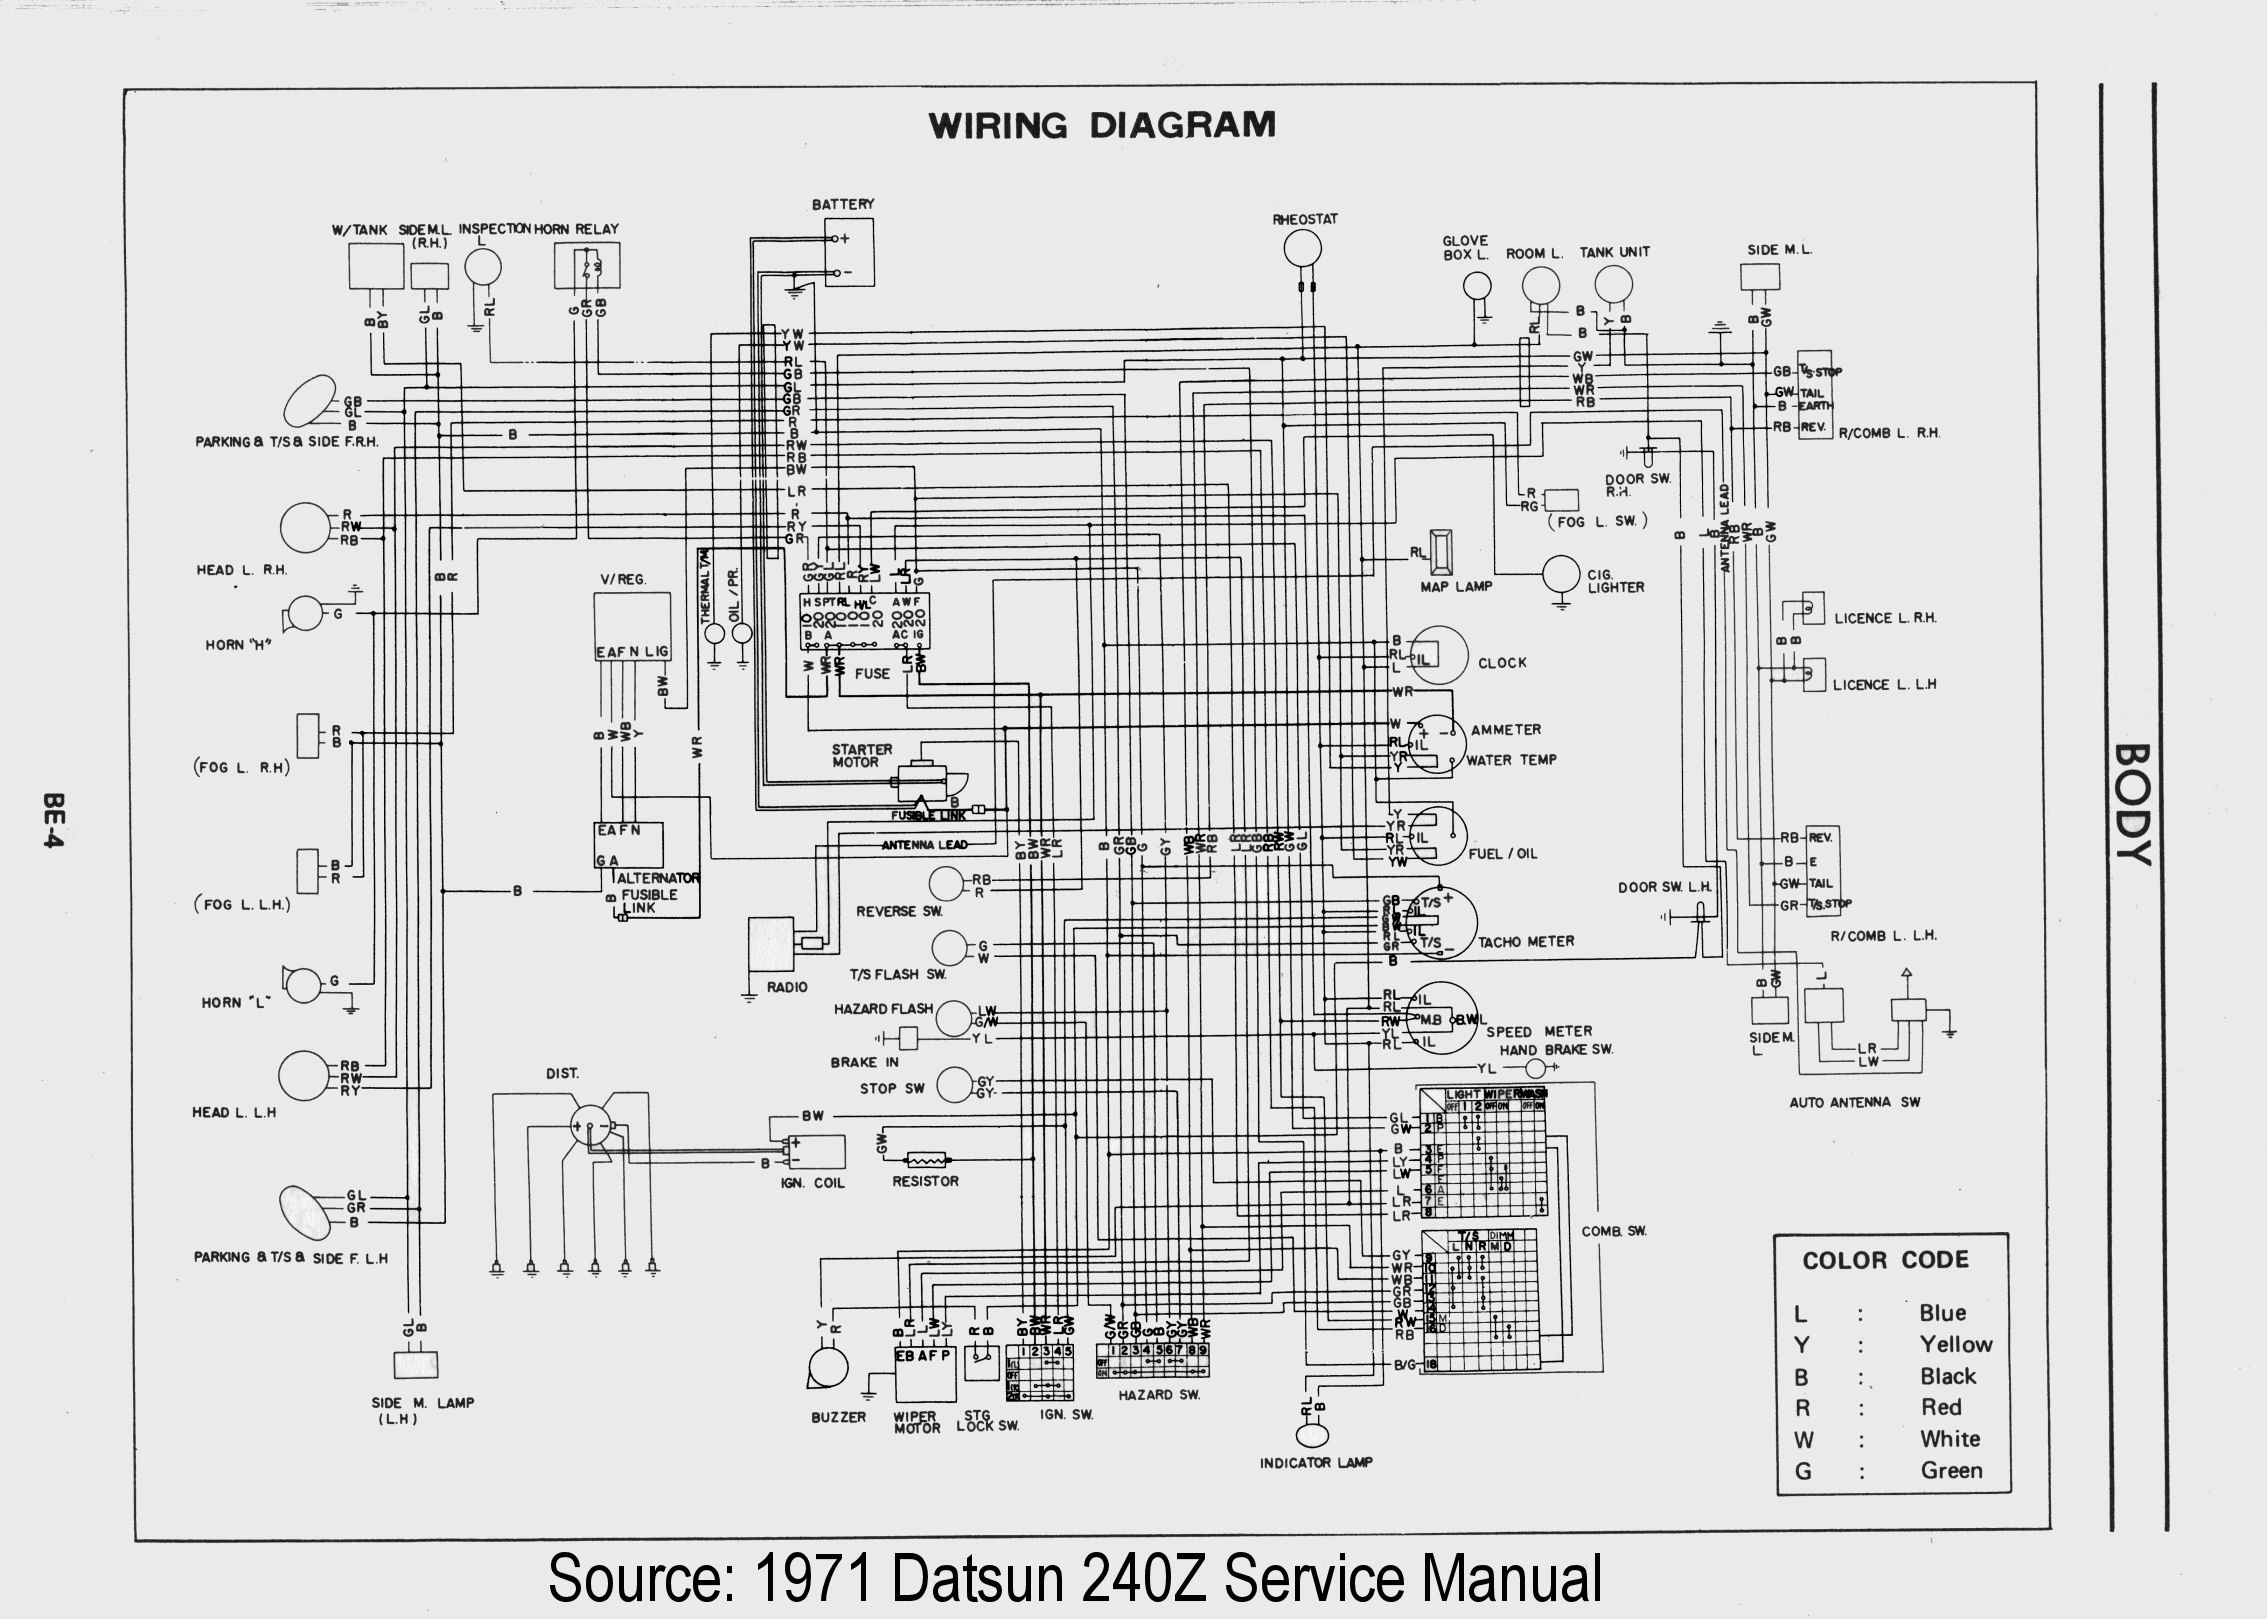 datsun 280zx engine diagram mercury marquis engine diagram wiring diagram  elsalvadorla 1965 Mustang Coil Wiring gl1000